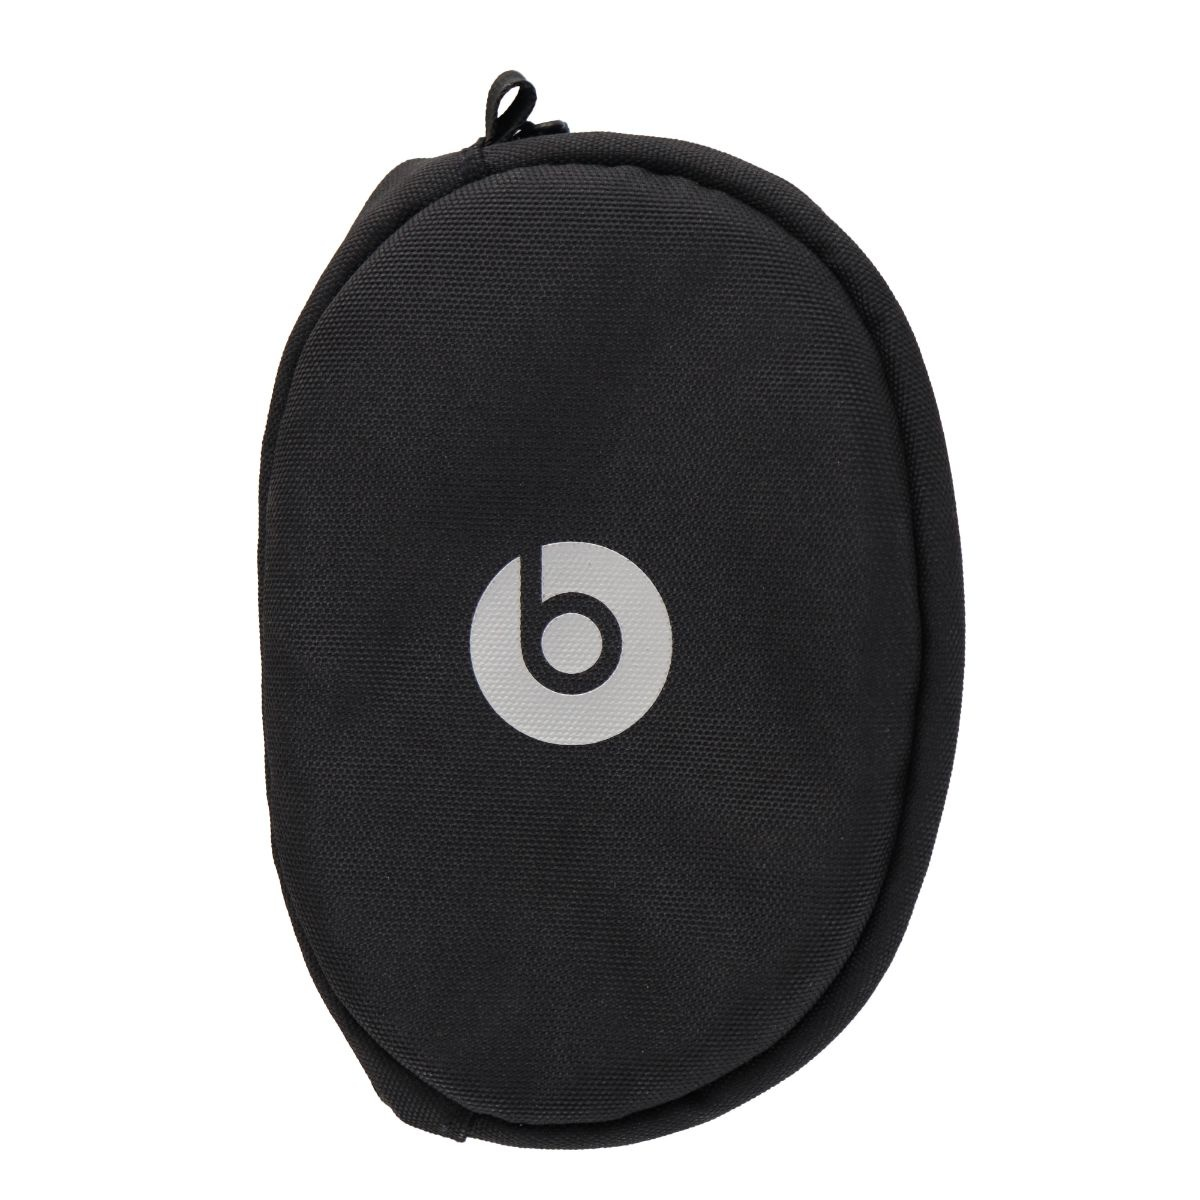 OEM Beats Carrying Pouch for Beats Solo 3